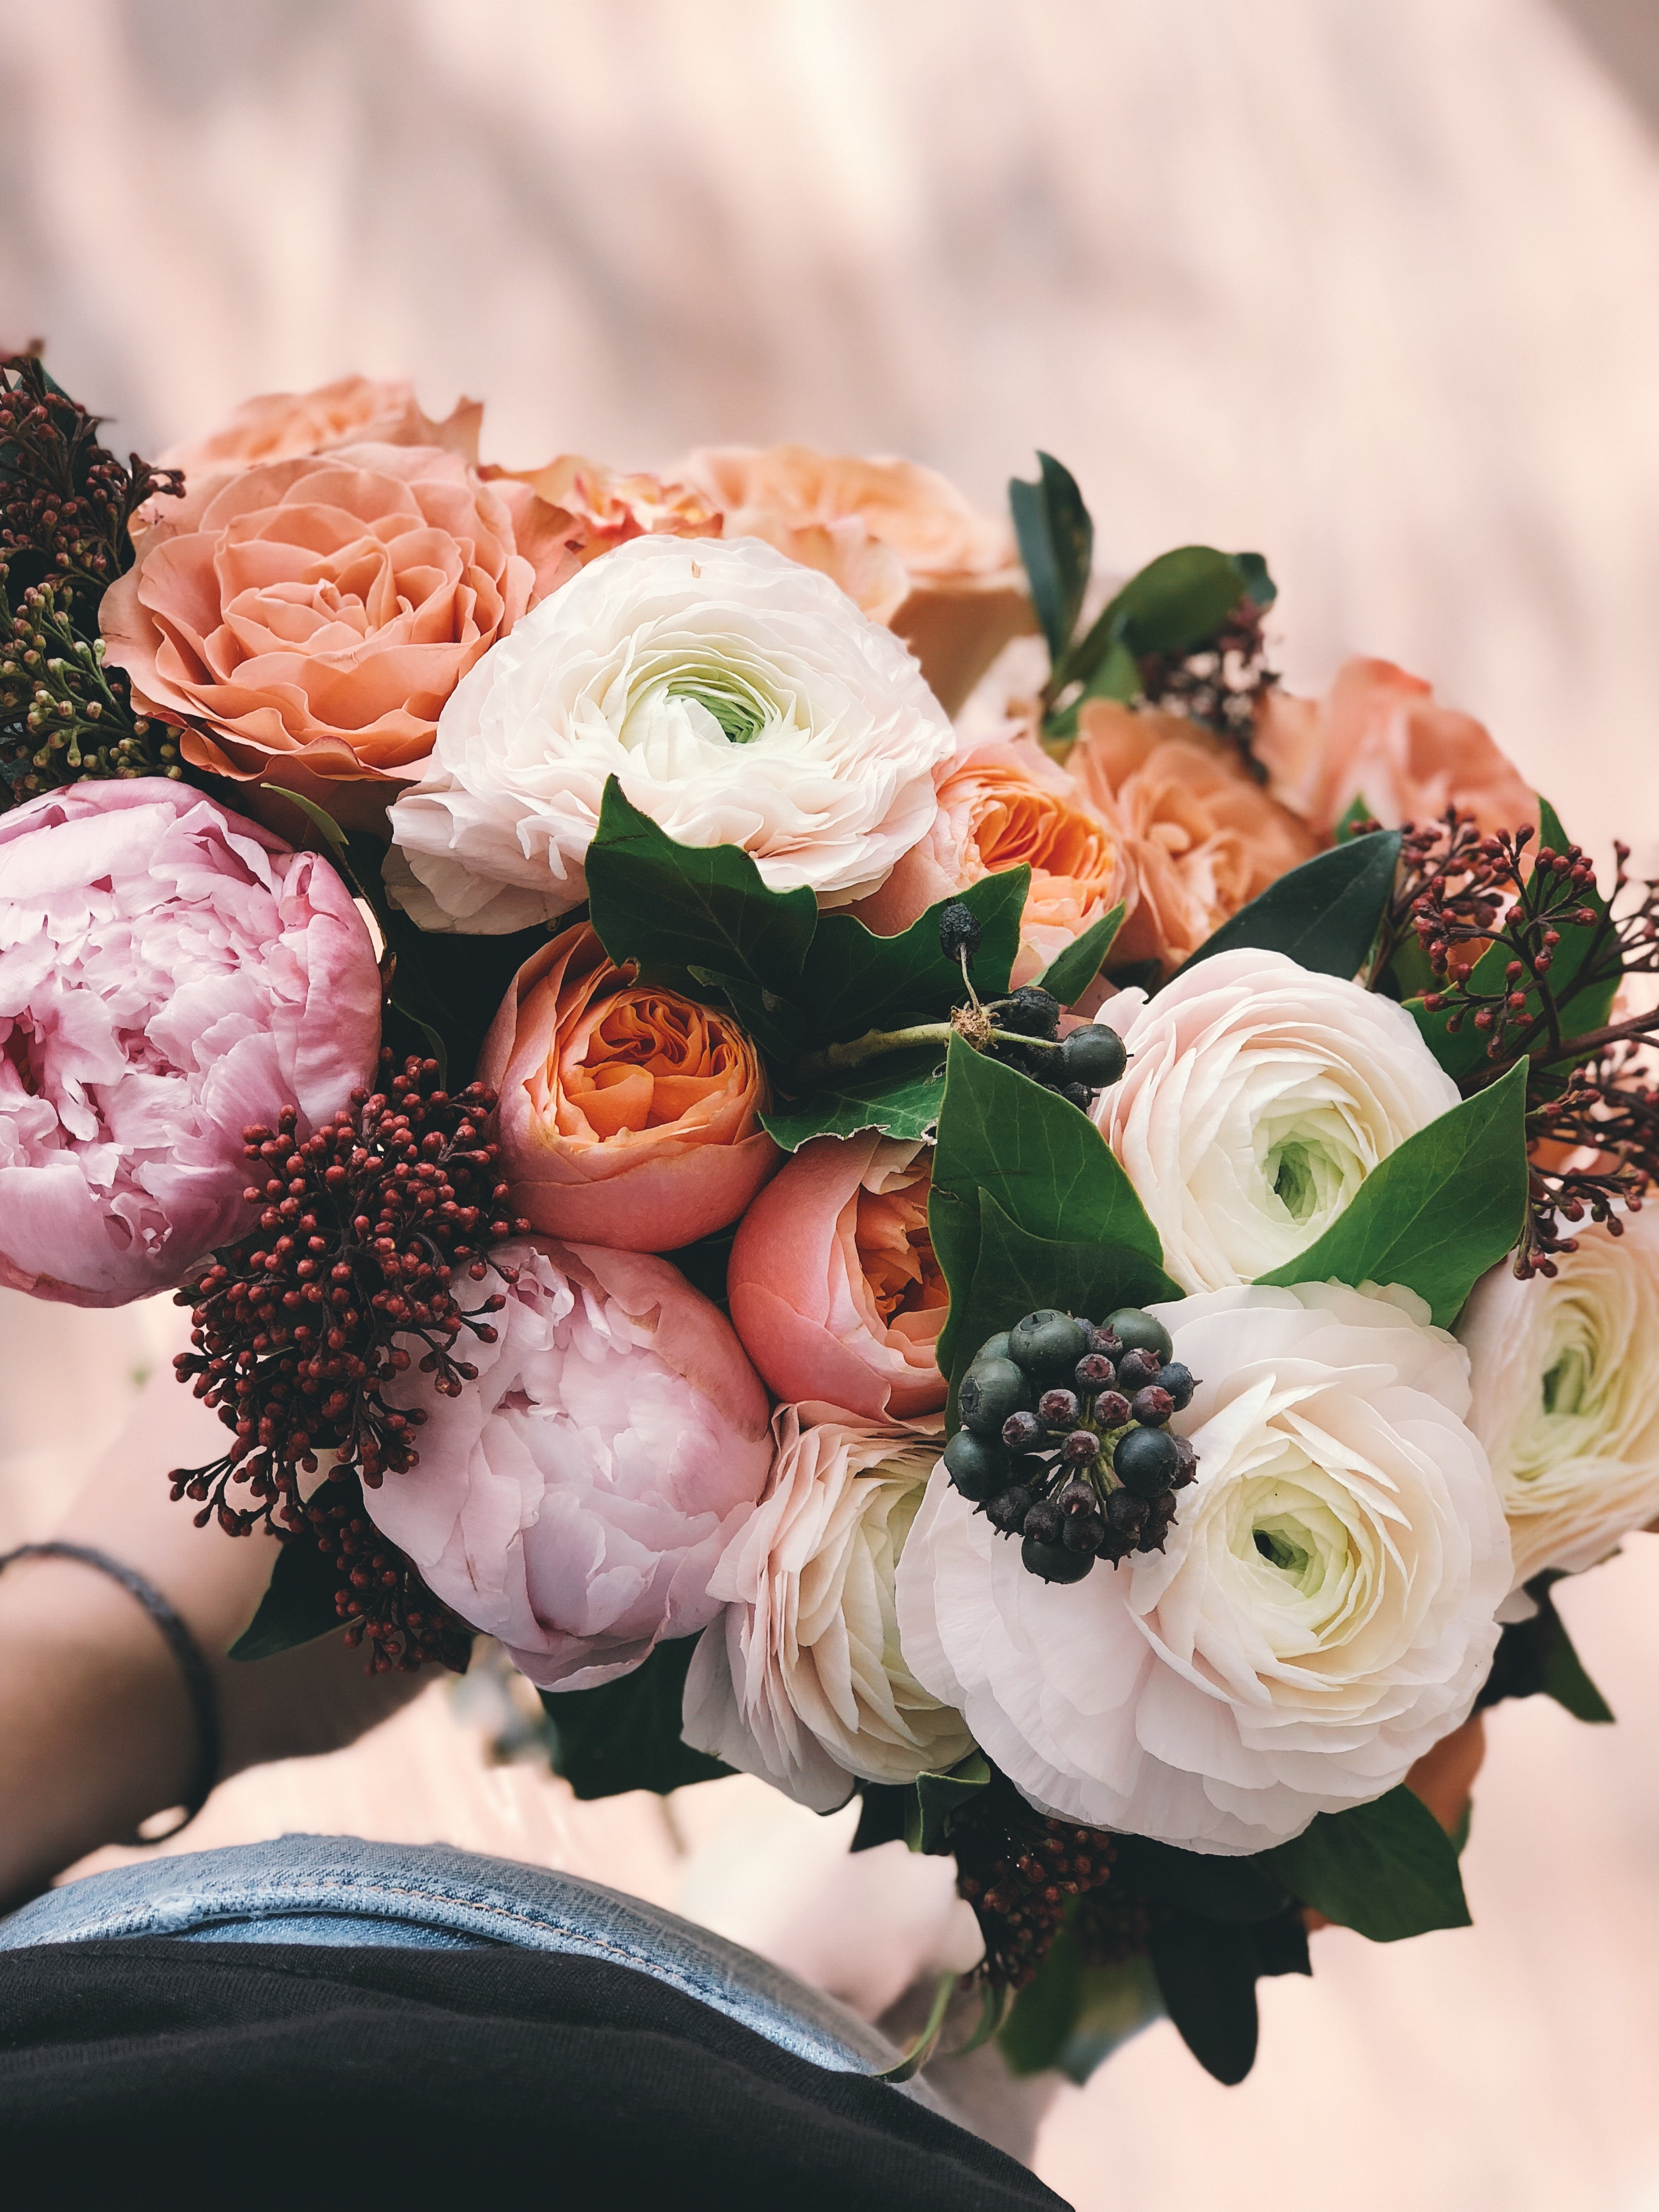 Small Bouquet Gift